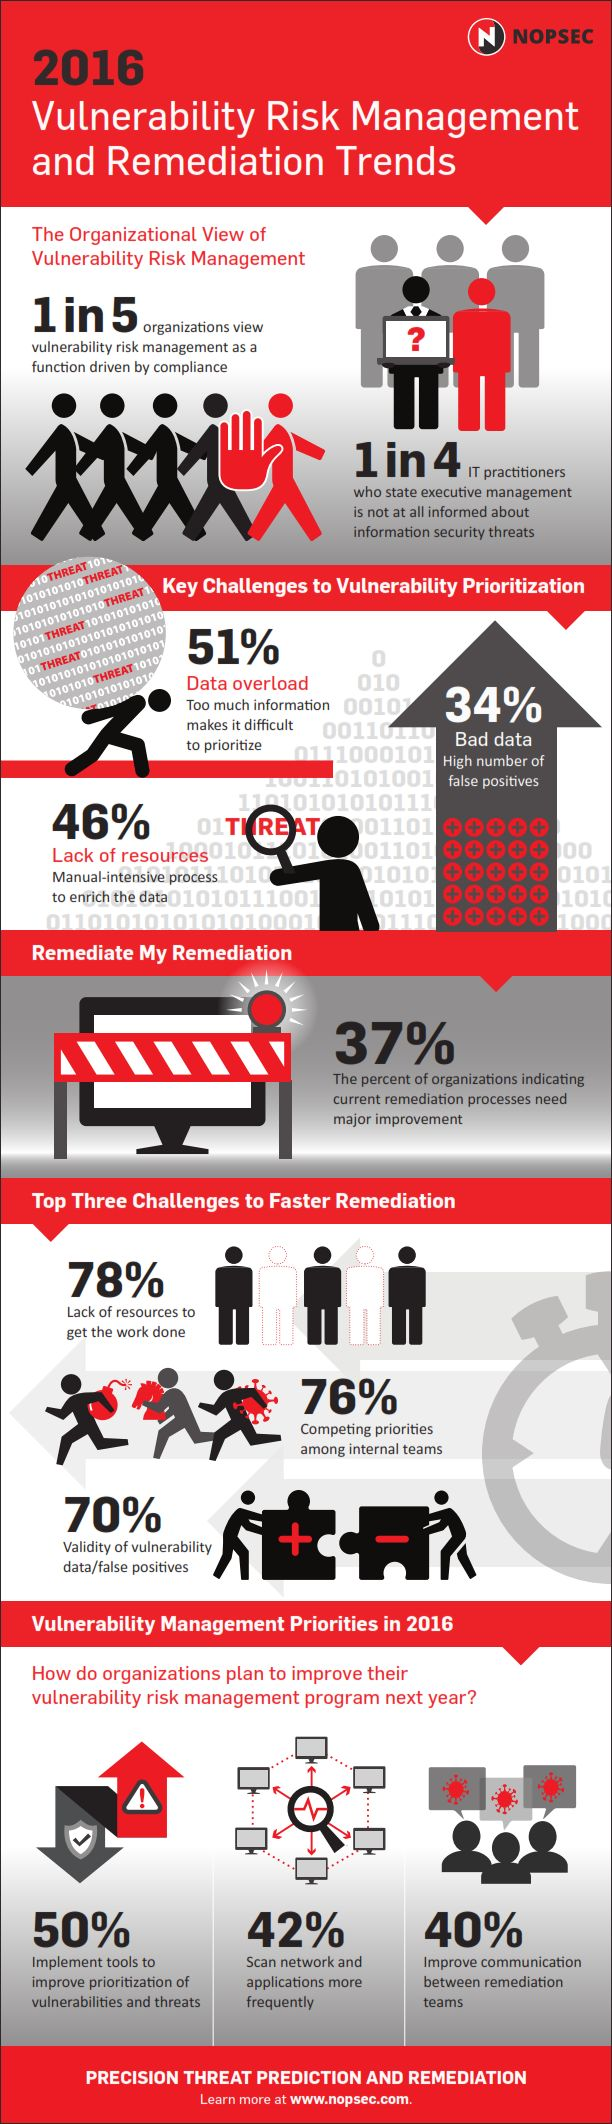 2016 Outlook: Vulnerability Risk Management and Remediation Trends »